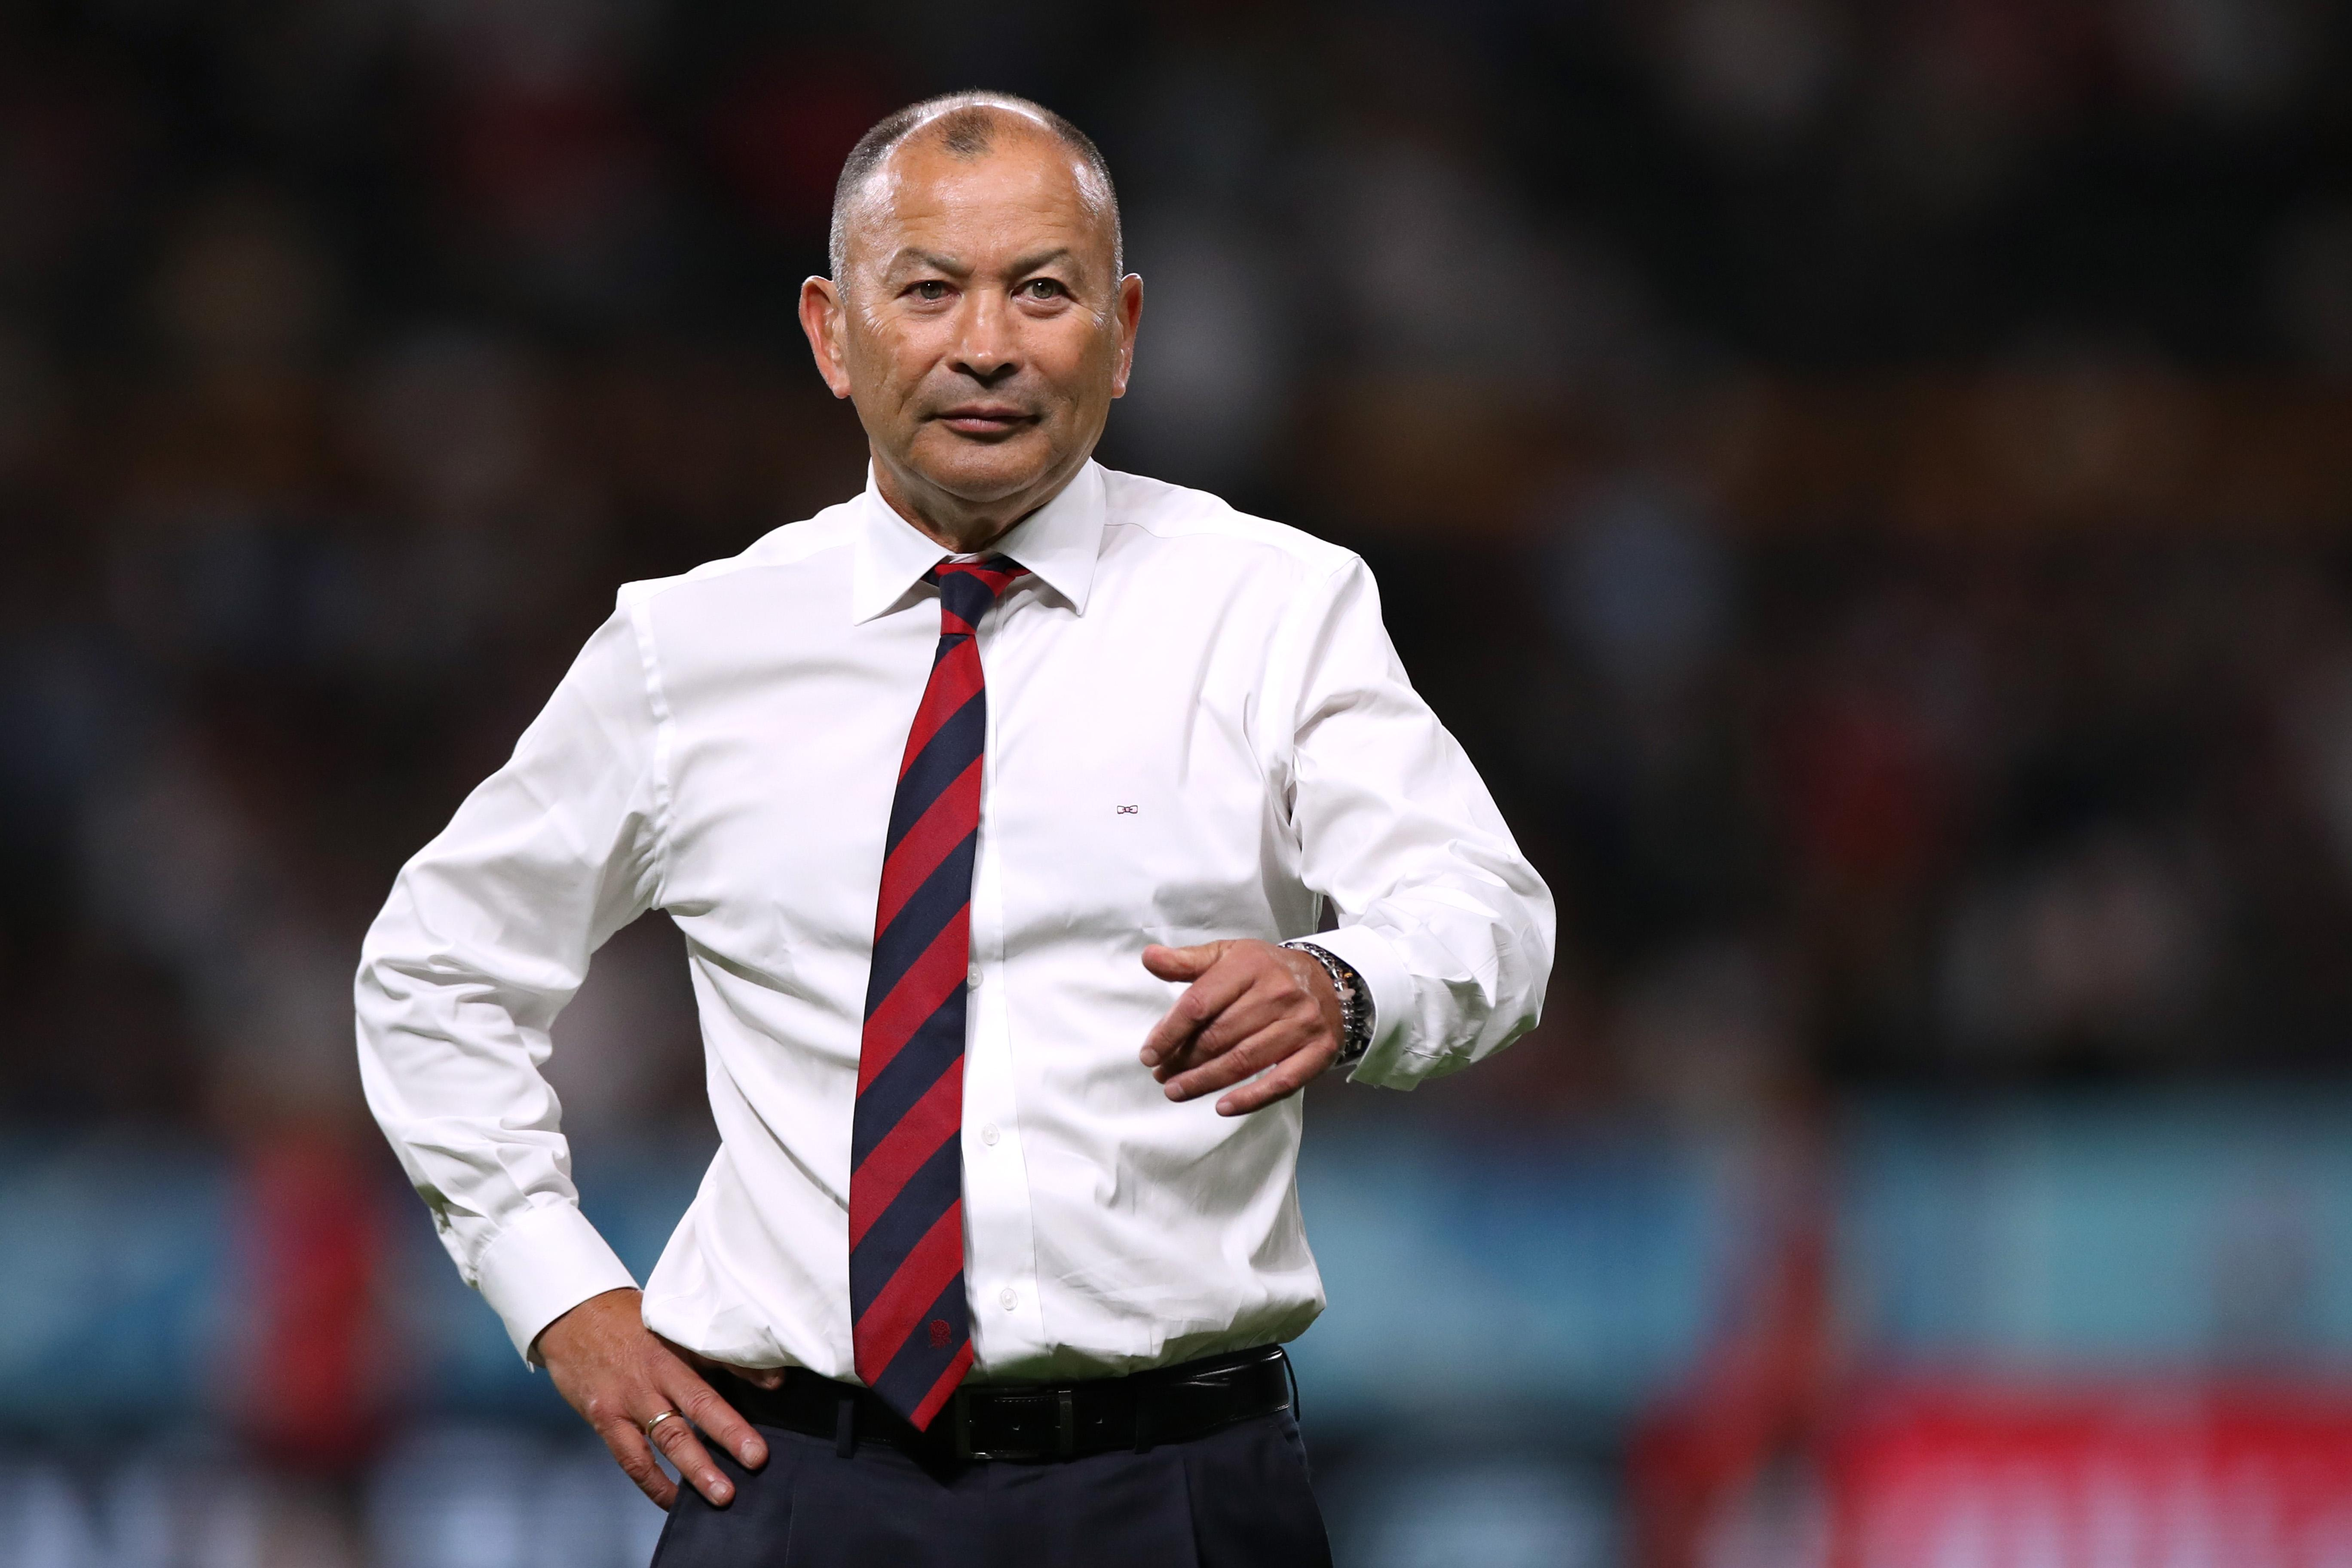 Jones keen to use scrum as weapon against Argentina